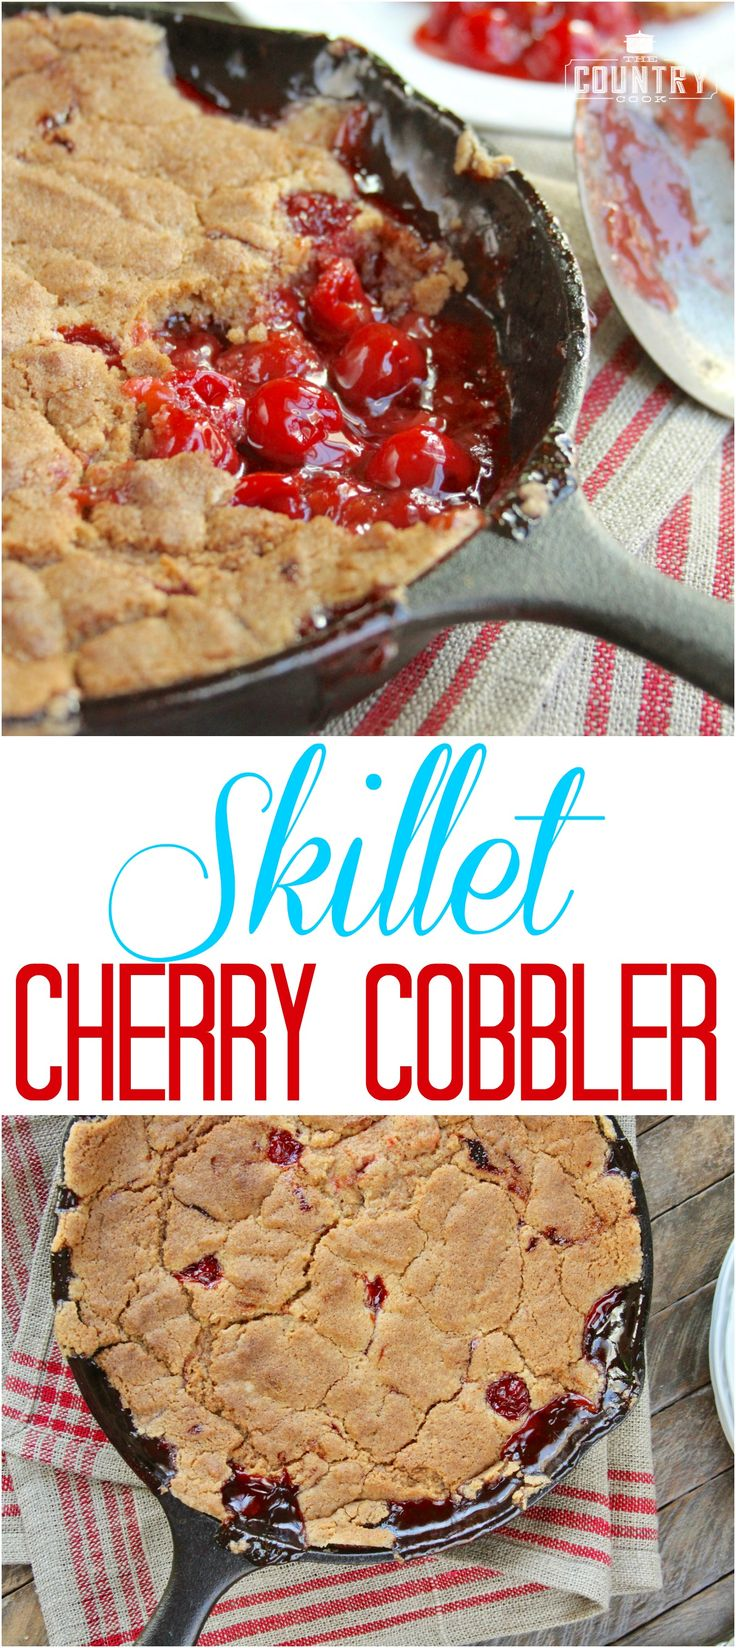 Easy Skillet Cherry Cobbler recipe from The Country Cook